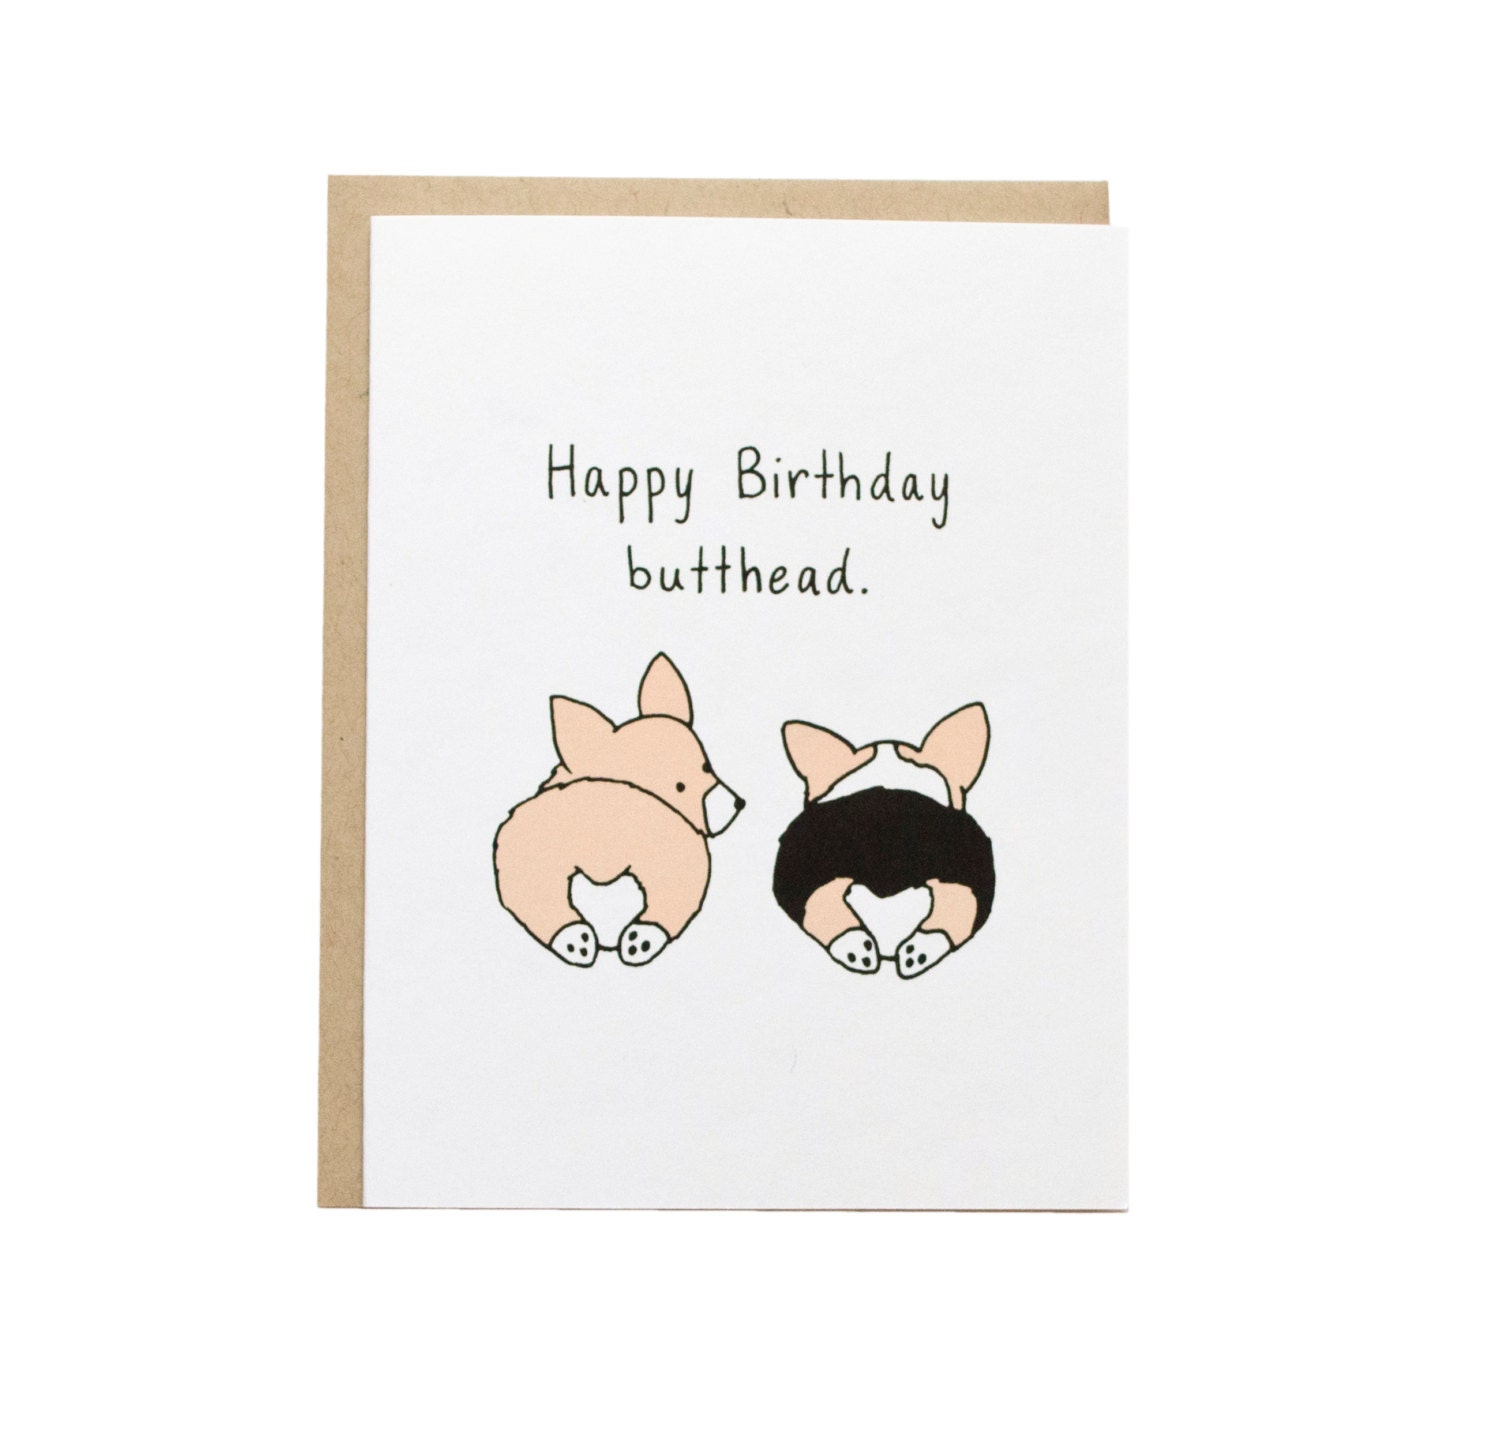 Happy Birthday Butthead Card Corgi Butt Corgi Dog Card